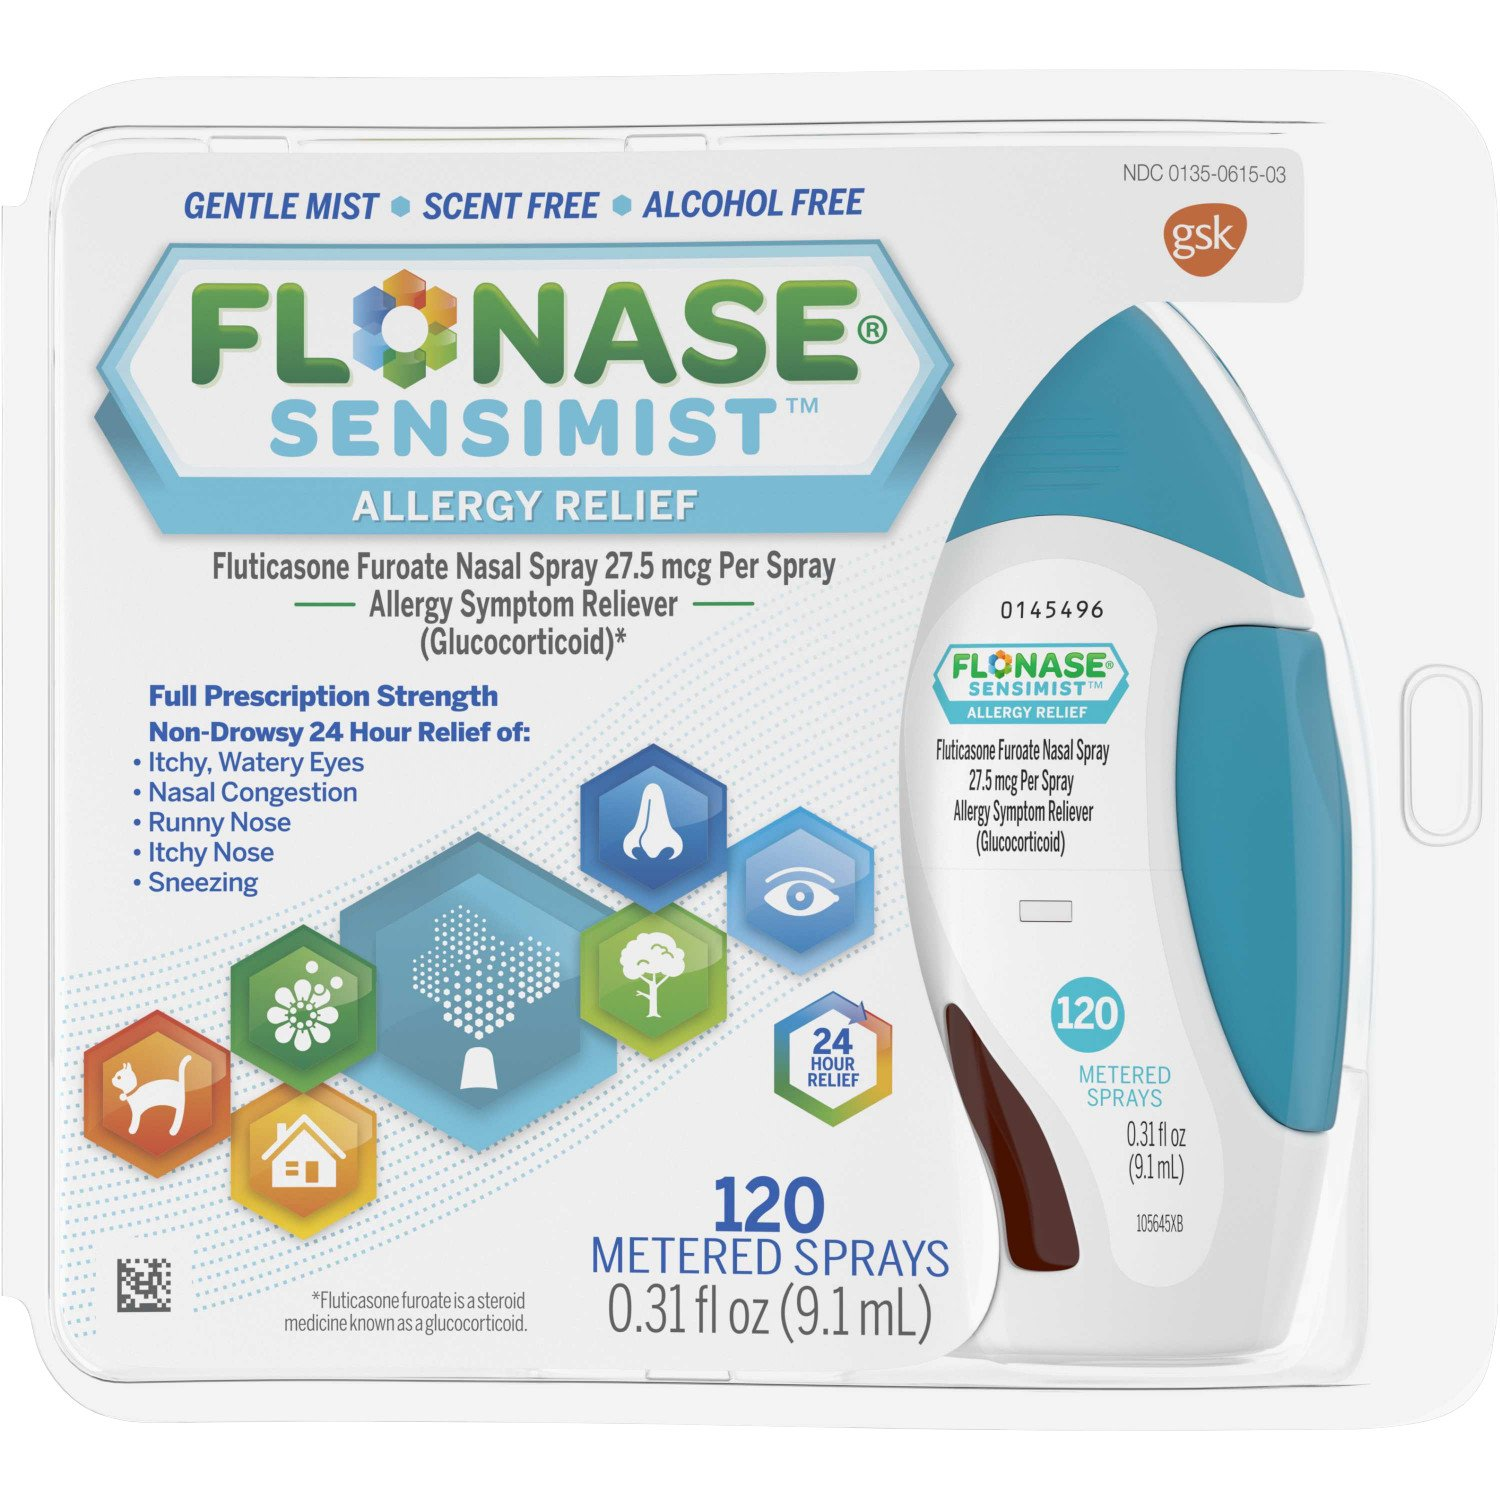 Flonase Sensimist 24hr Allergy Relief Nasal Spray, Gentle Mist, Scent-Free, 120 sprays